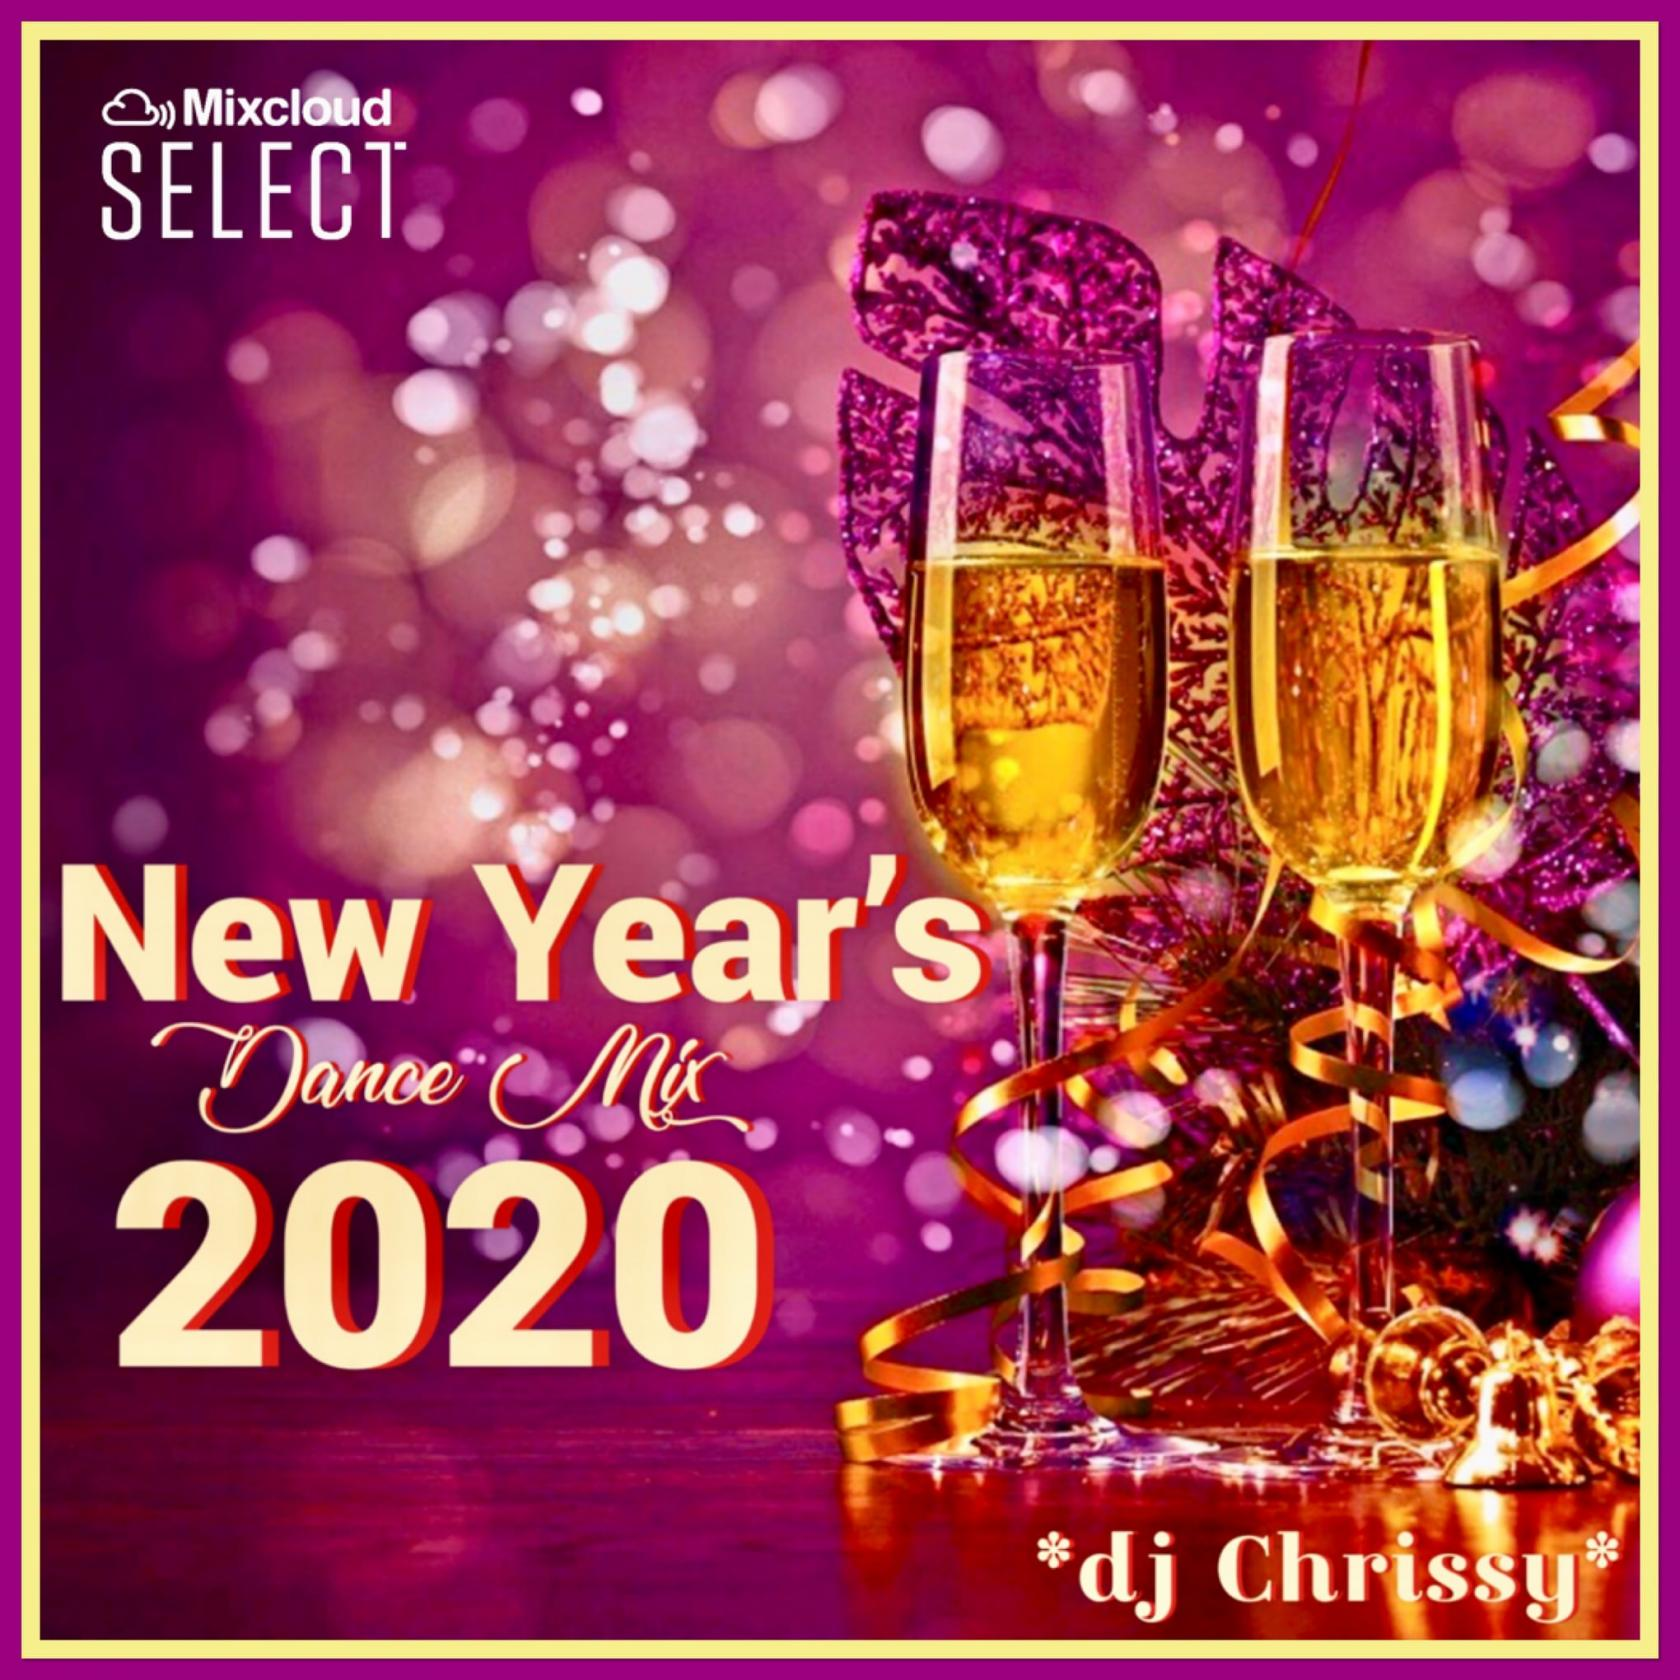 New Year's Dance Mix 2020